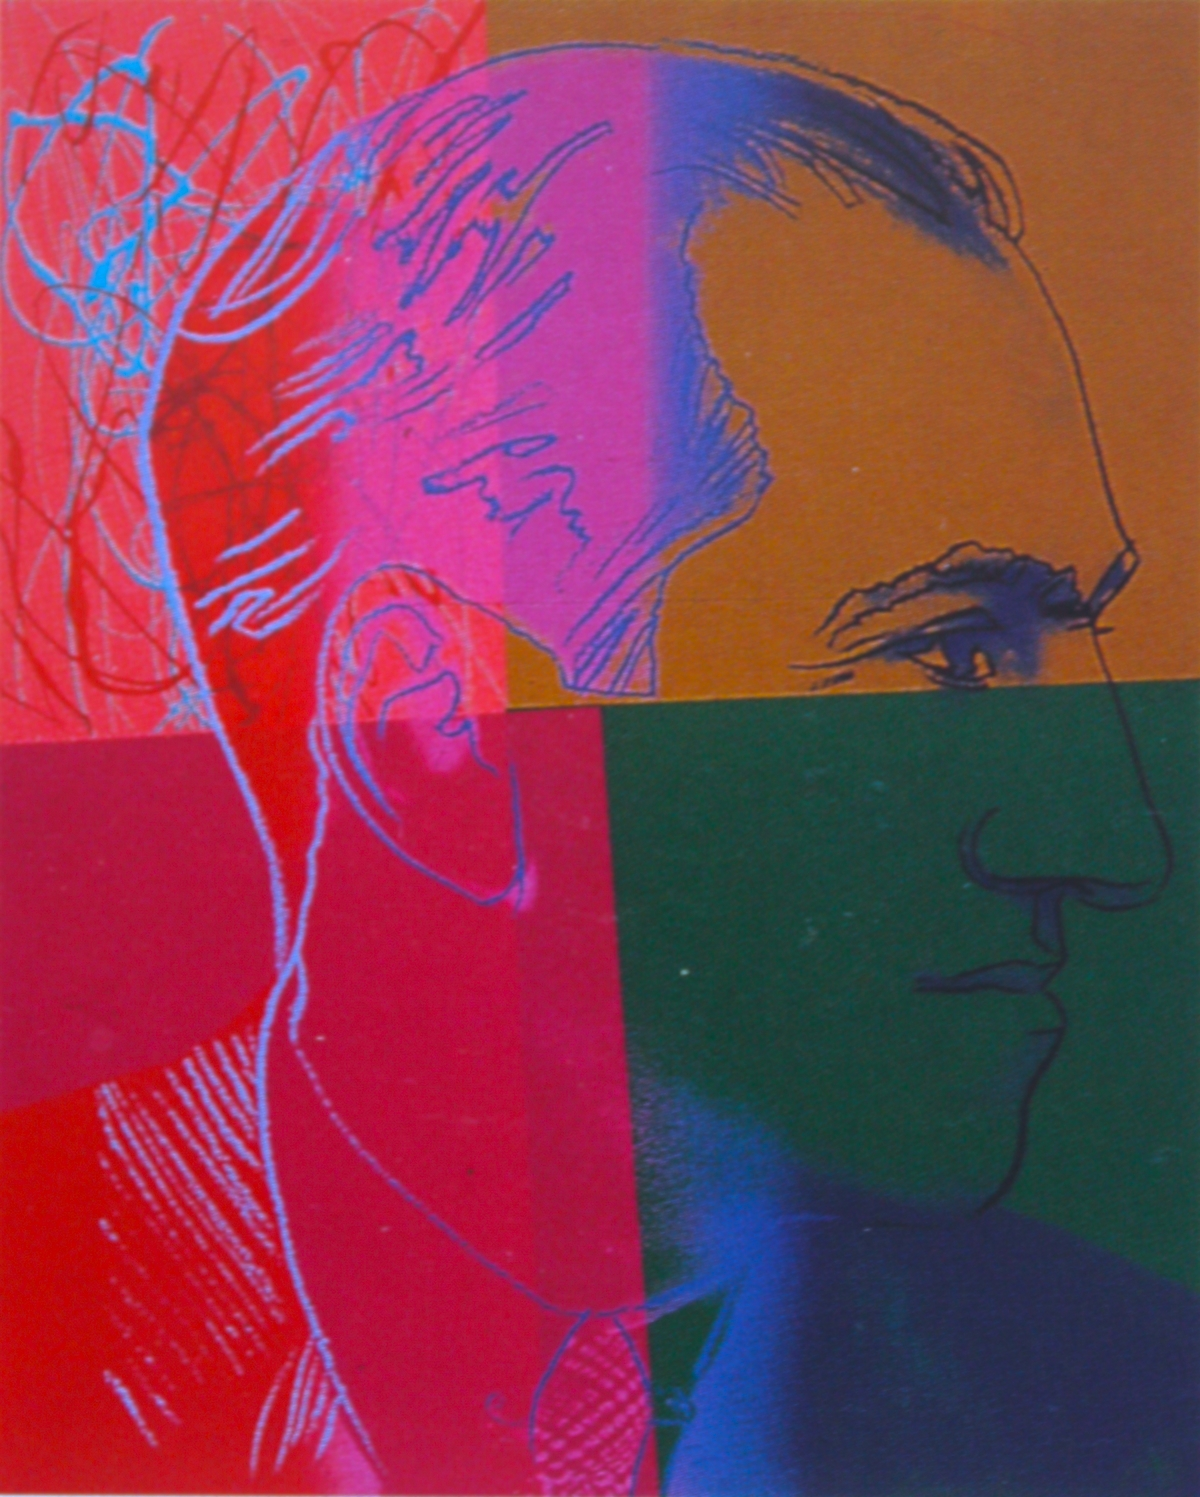 George Gershwin by Warhol